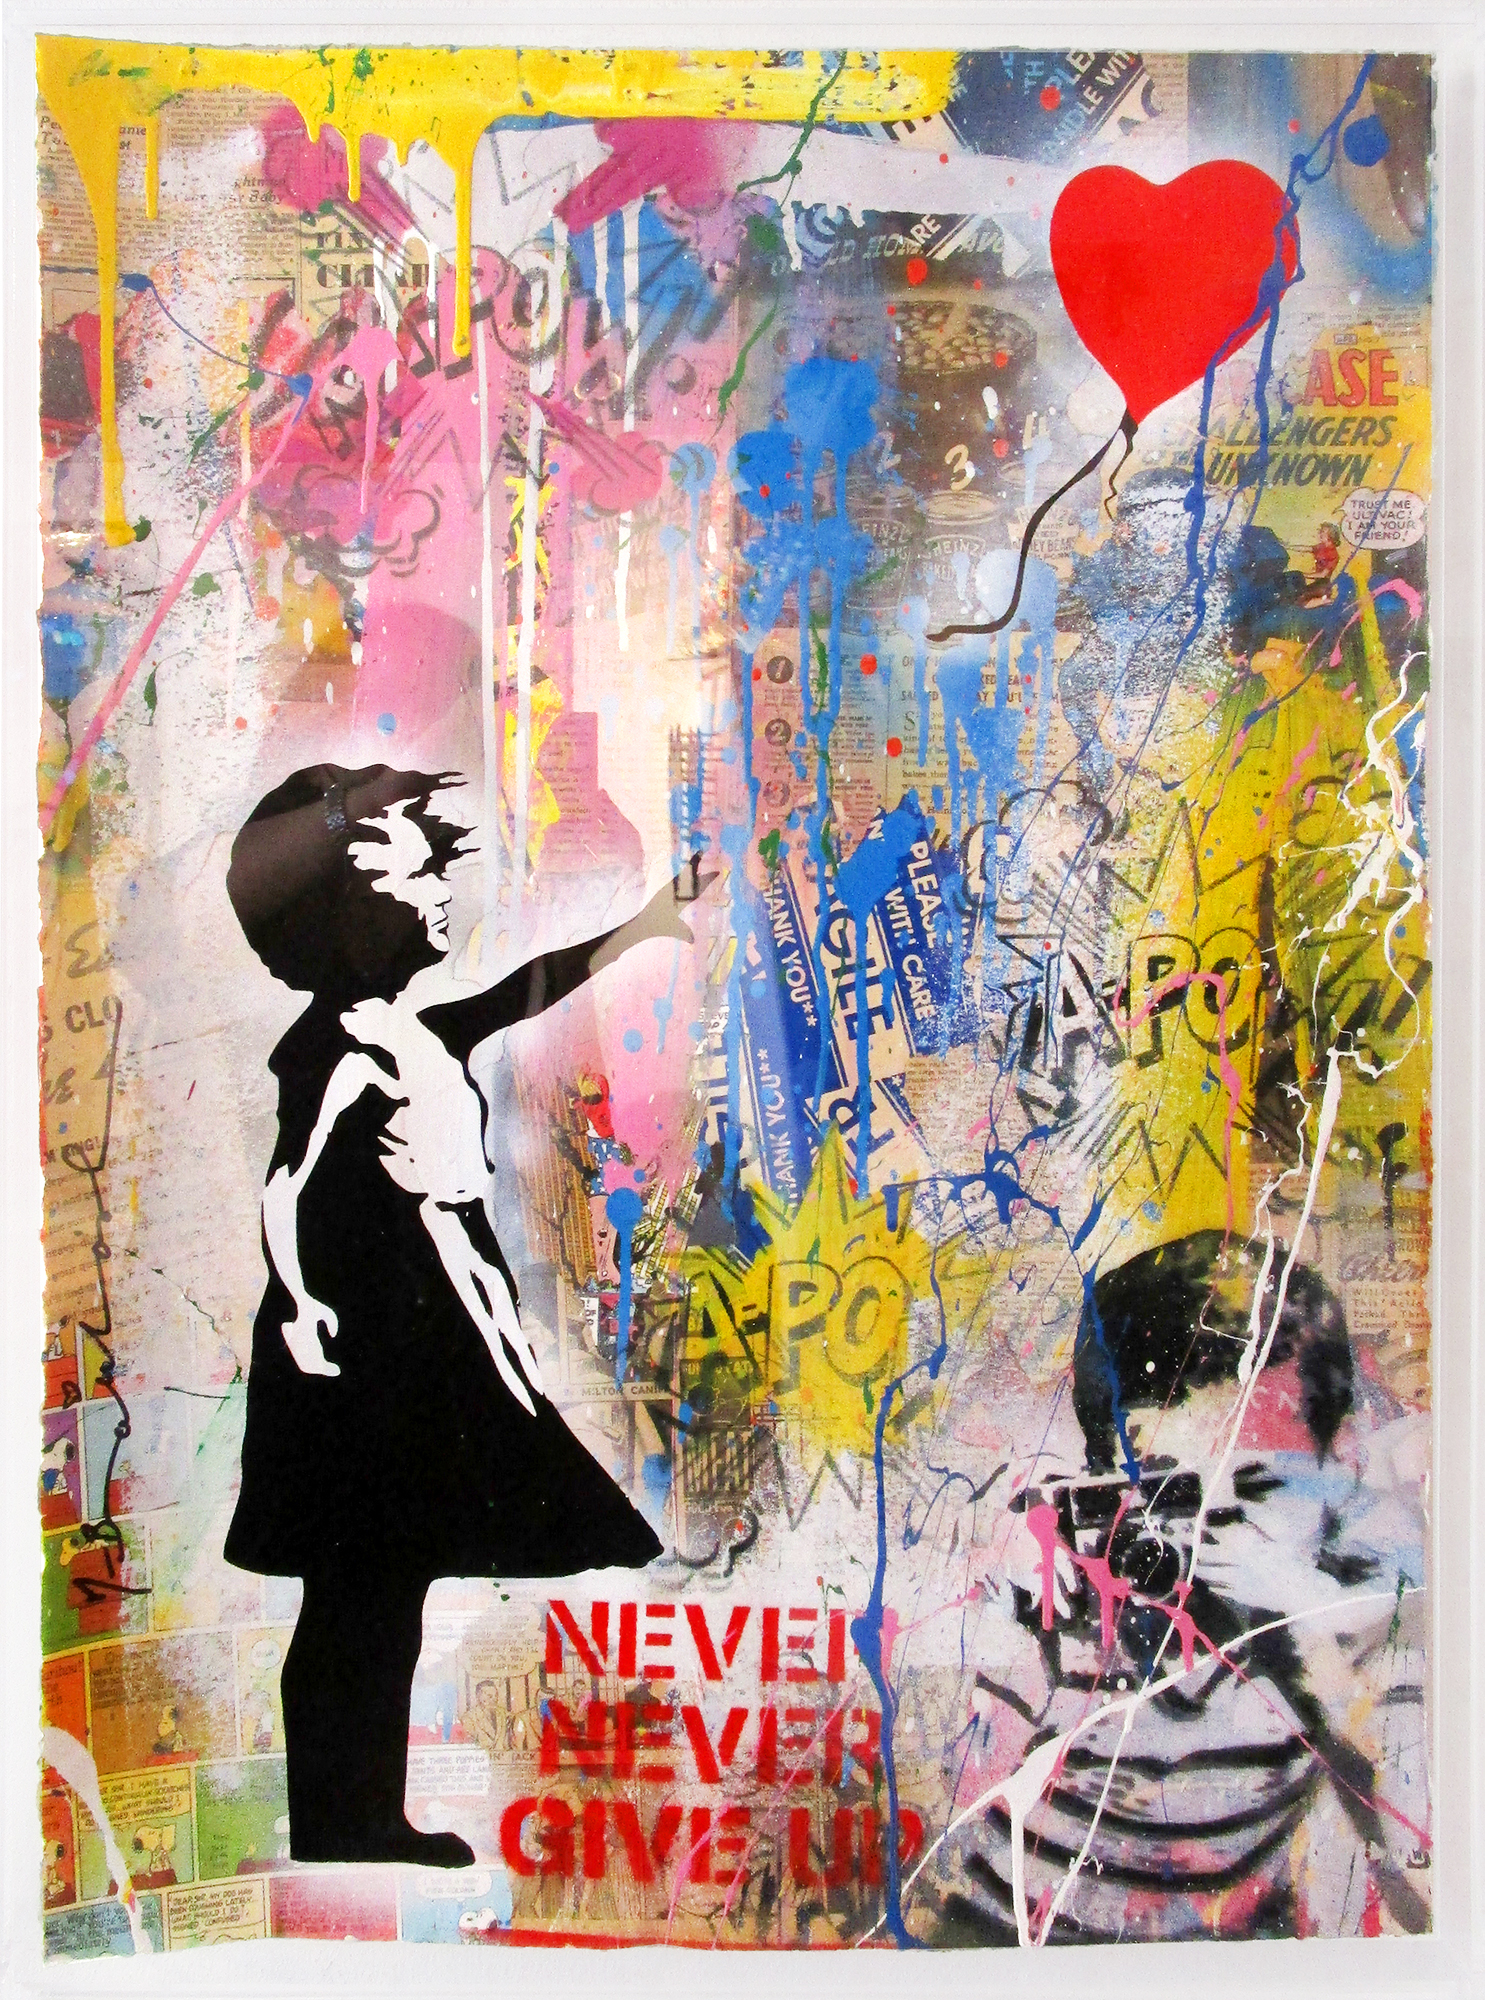 Mr. Brainwash - Balloon Girl , 9003-012-102